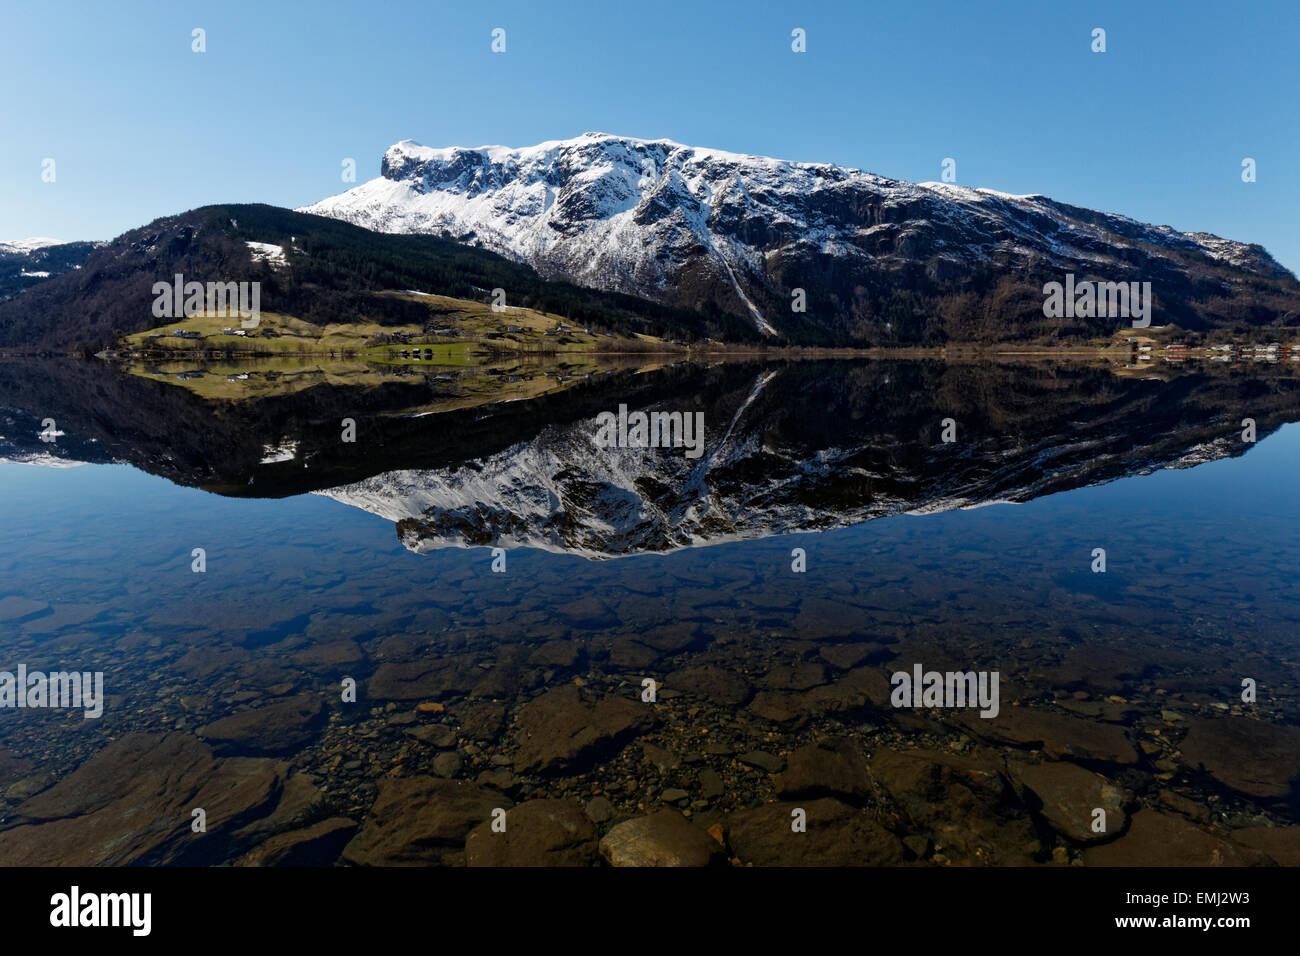 Reflection of the mountains meeting the sea at Granvinsvatnet, in Hardanger, Norway. Stock Photo